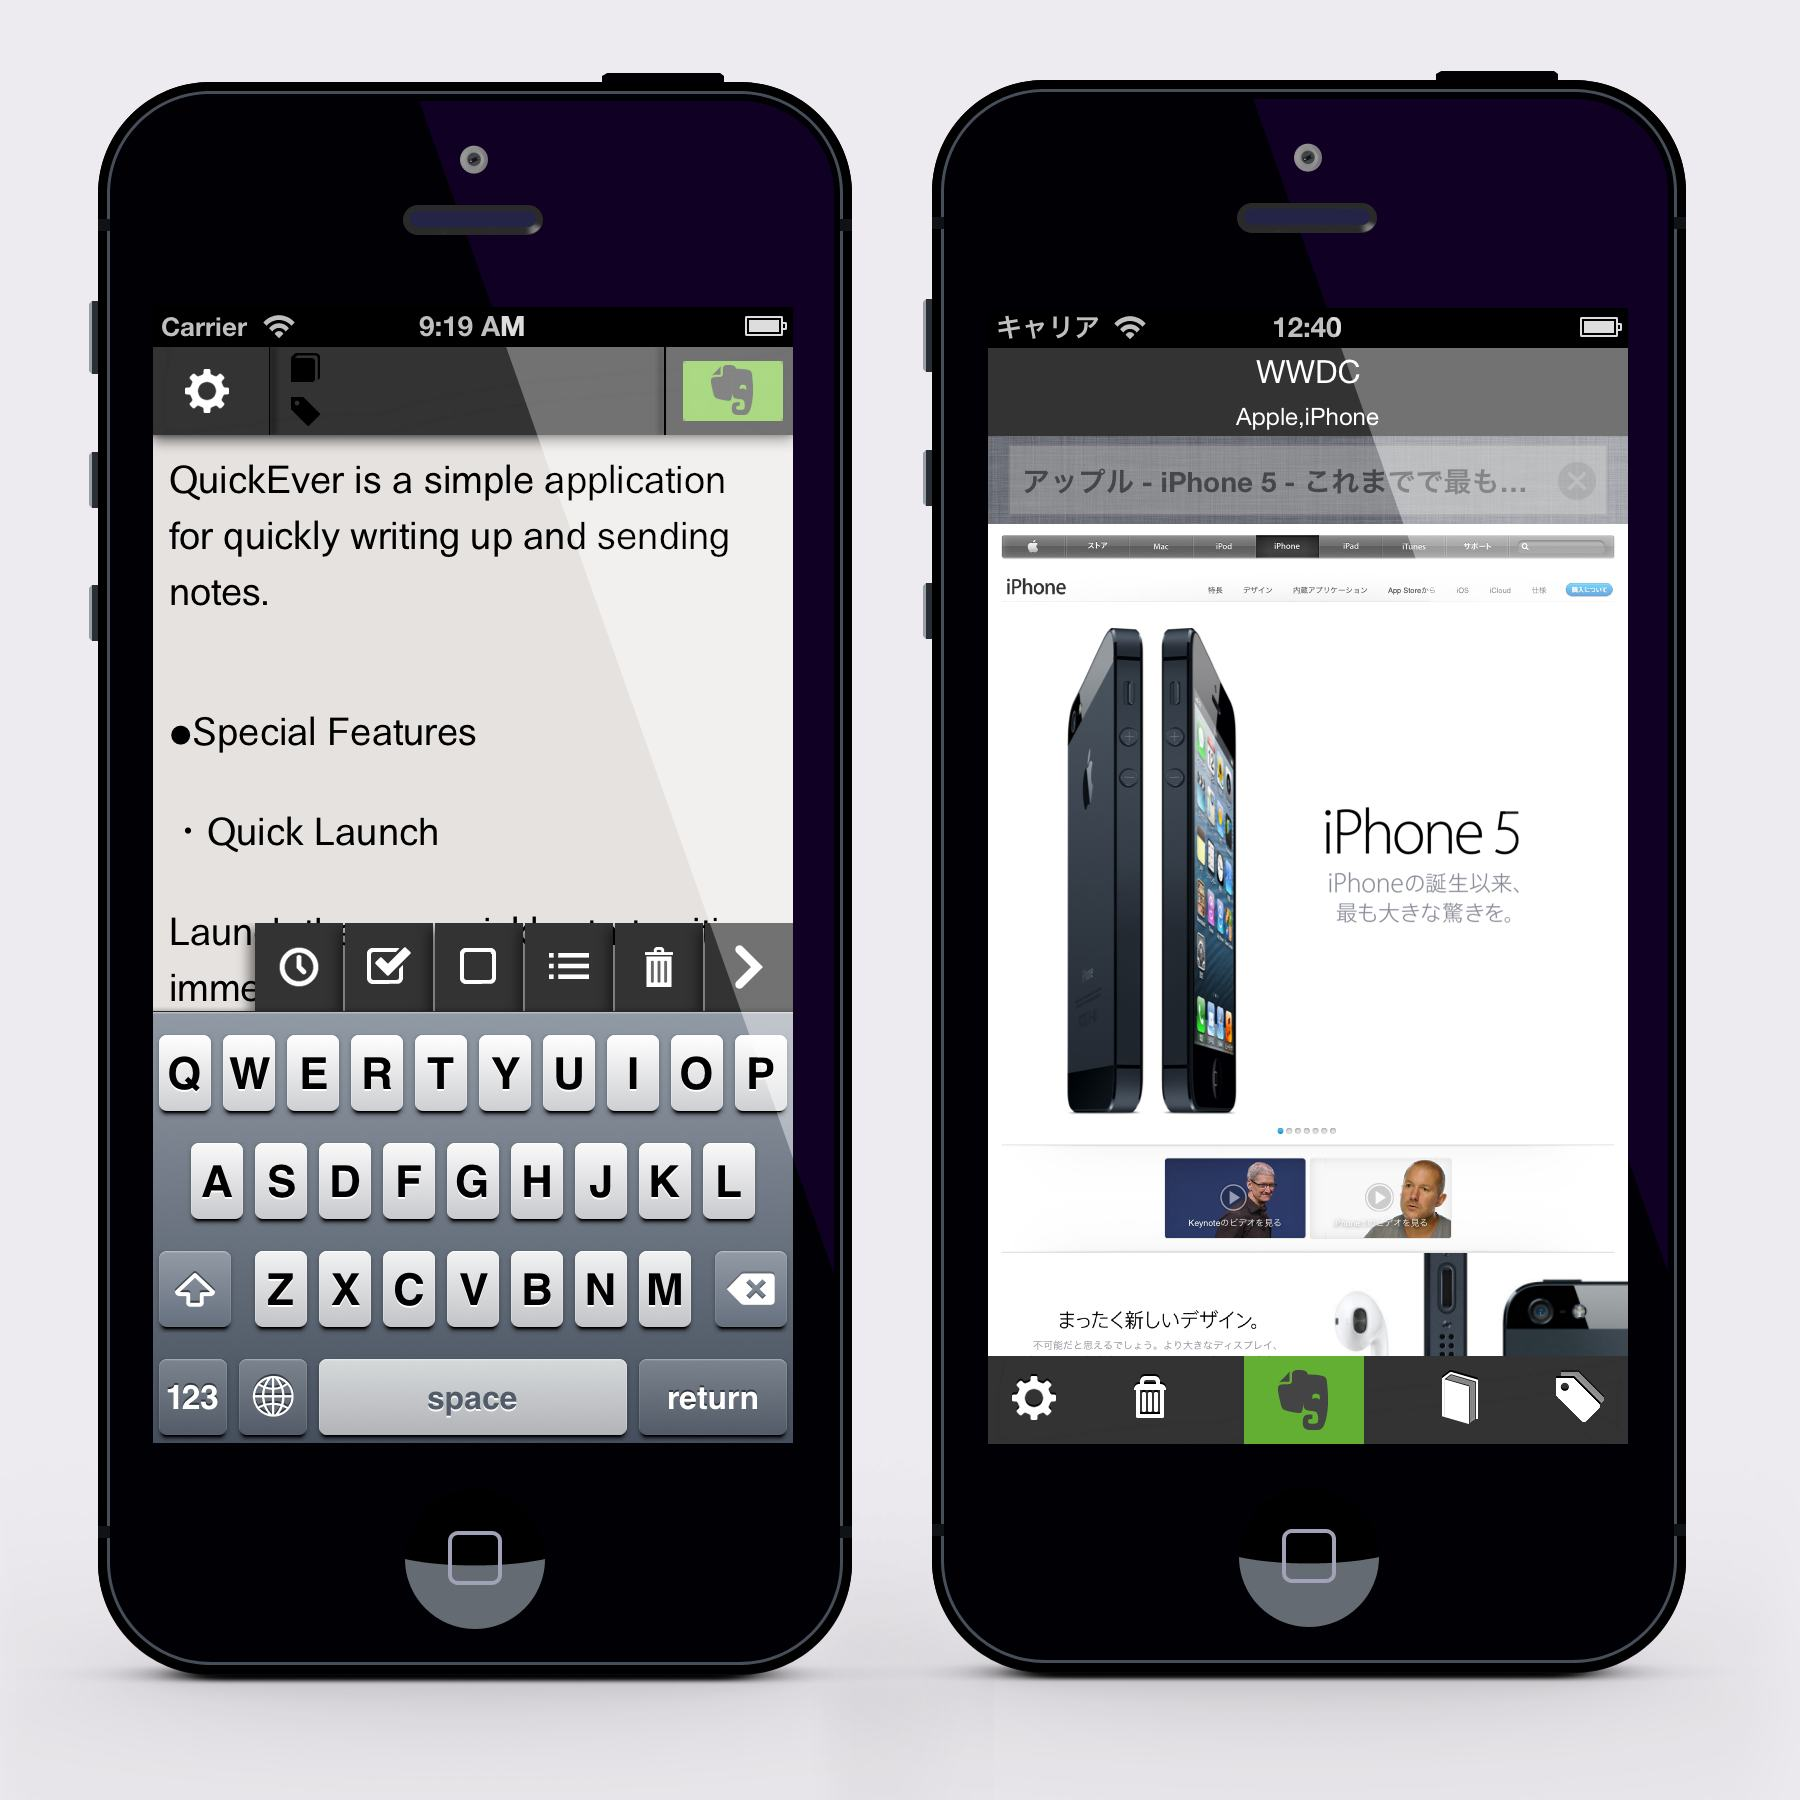 Evernote連携アプリ QuickEver と QuickEver Clip が iPhone5 発売記念セール